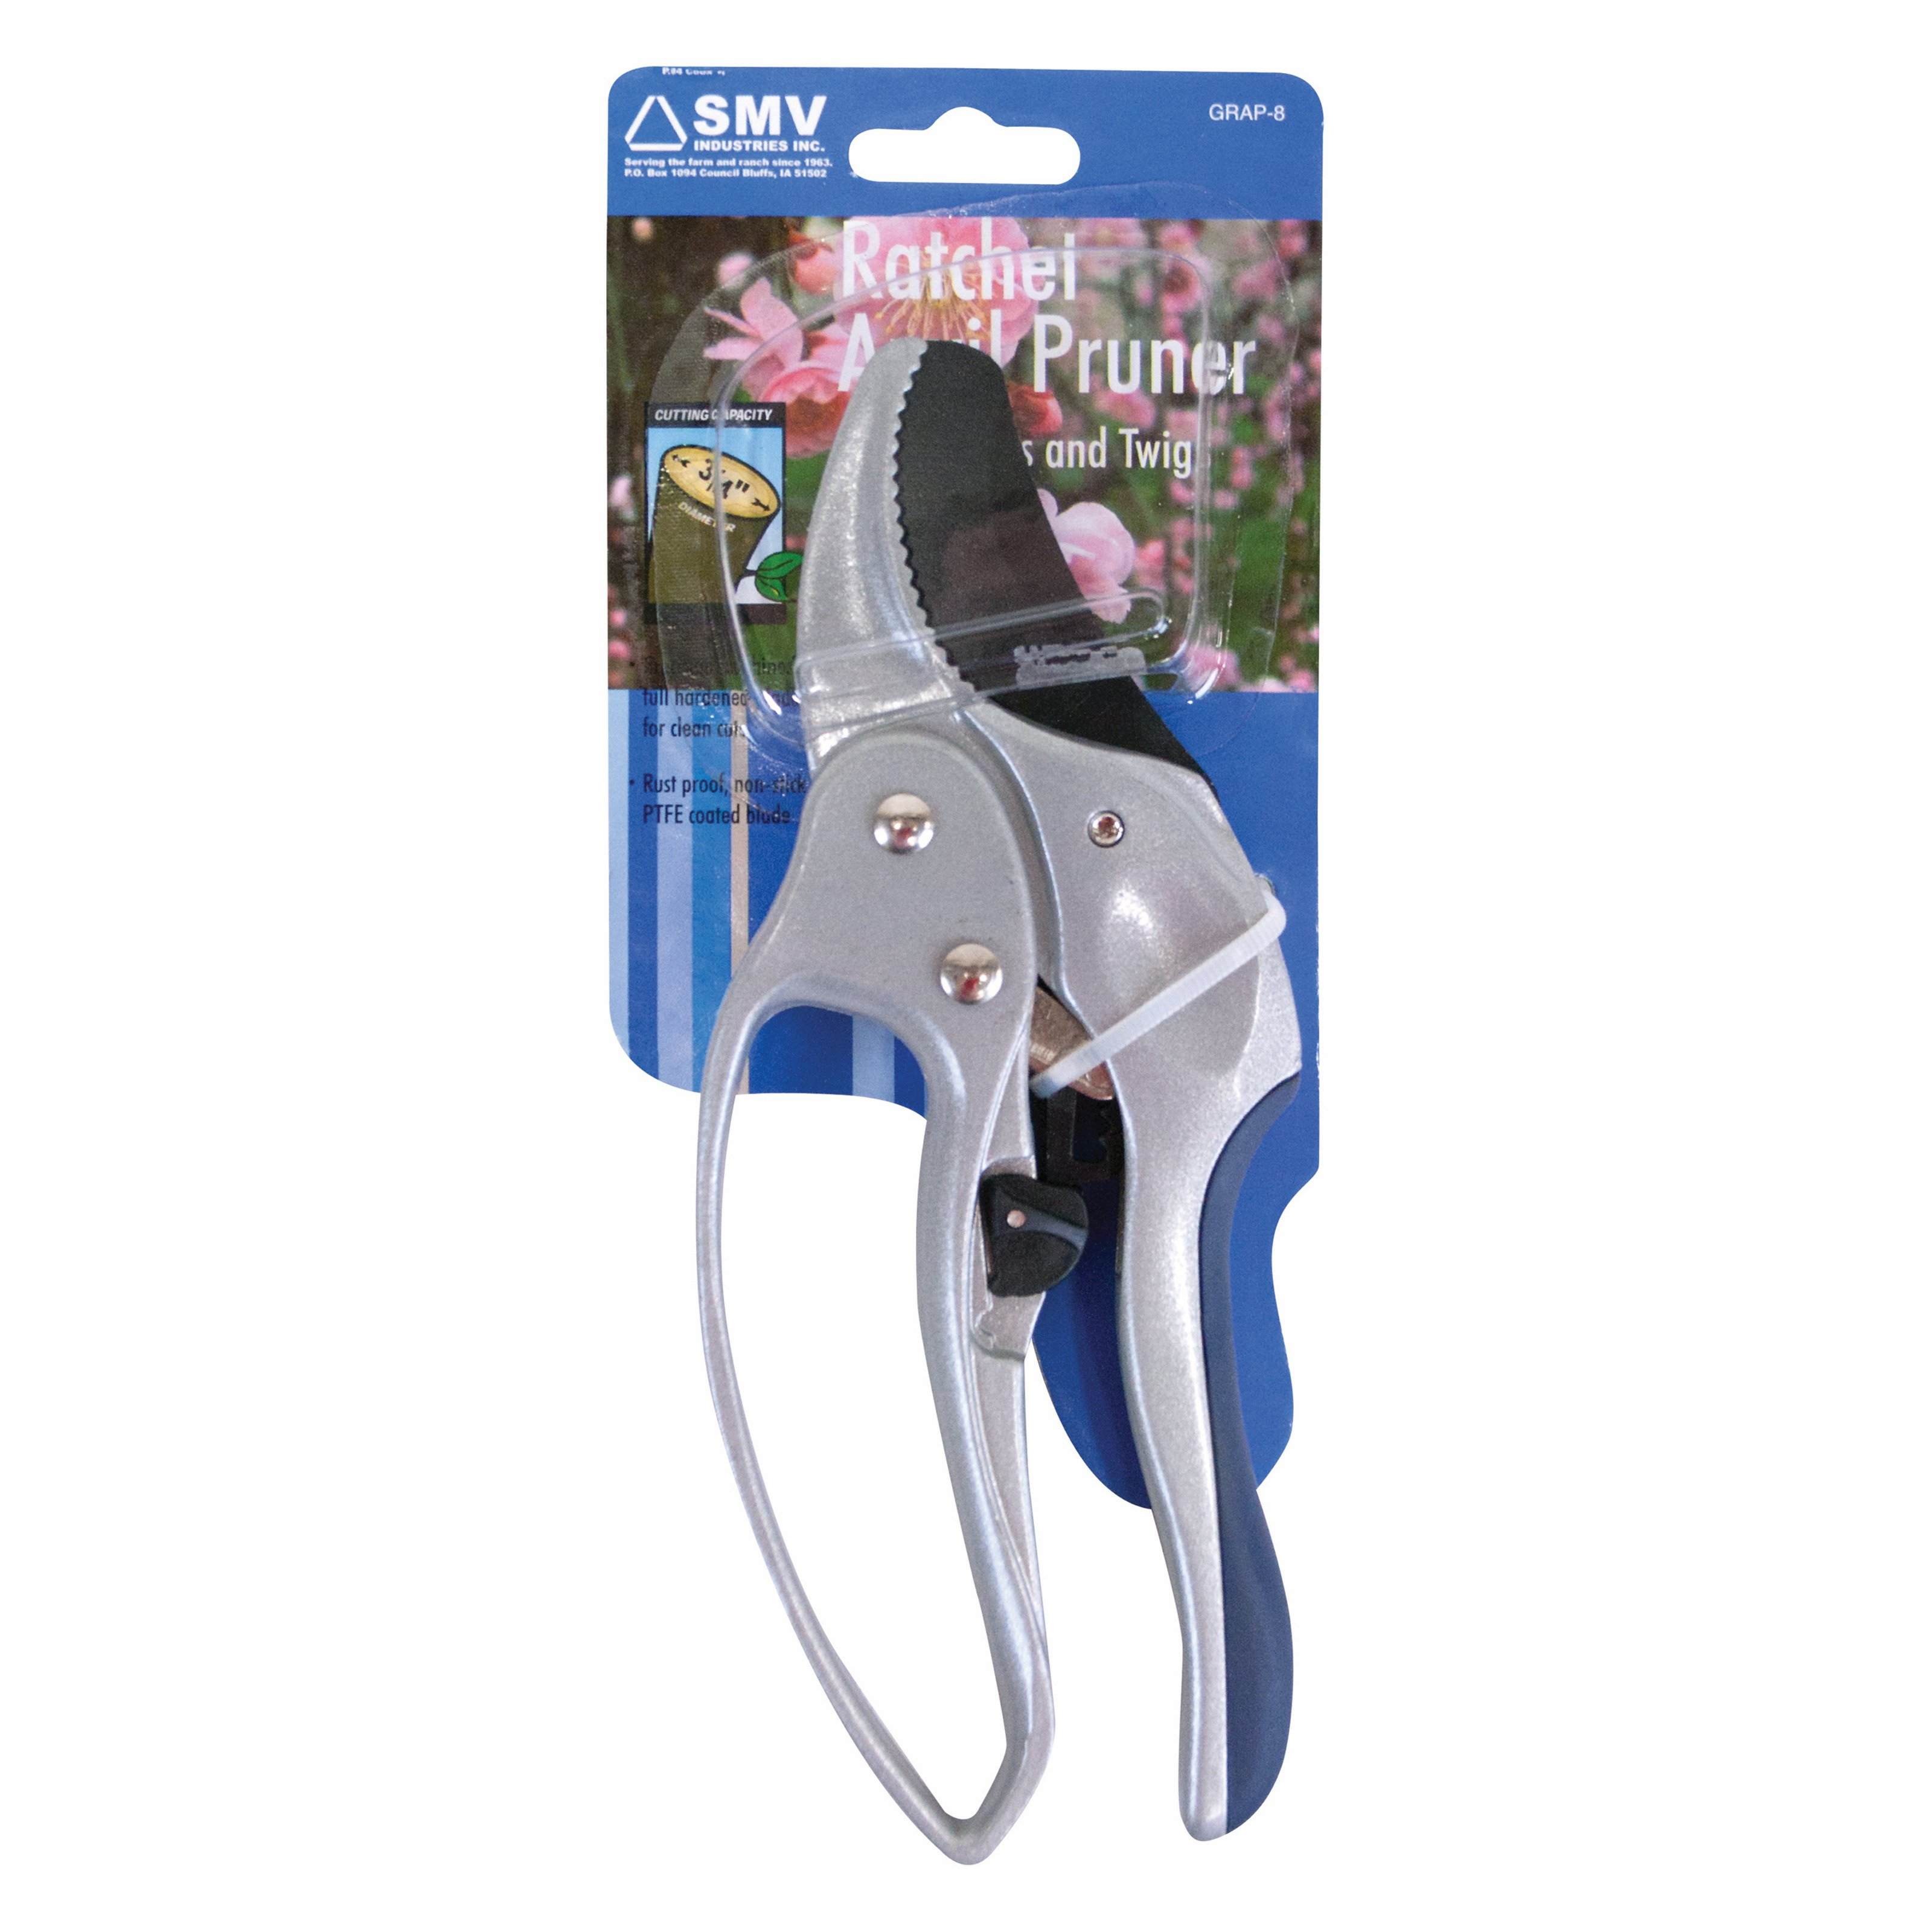 SMV Ratchet Anvil Pruner